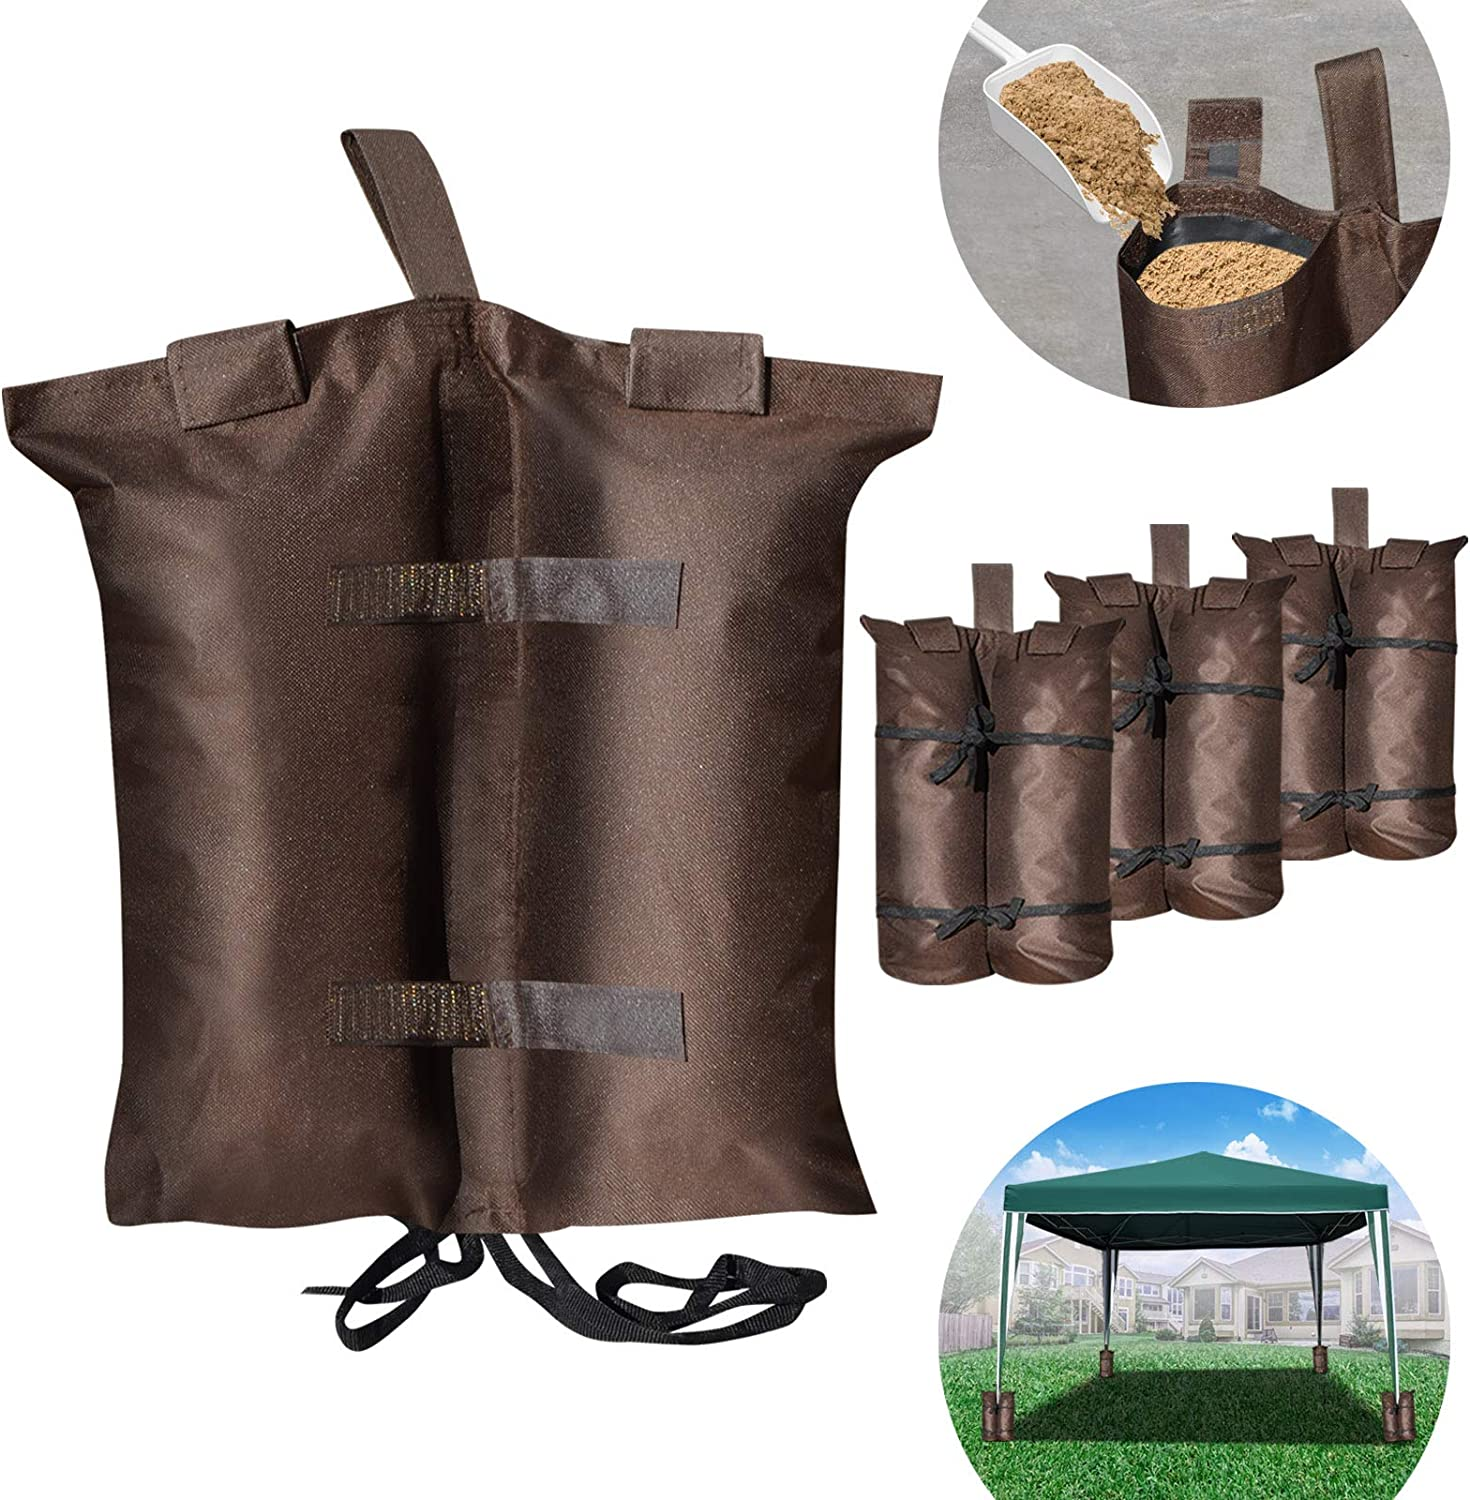 BenefitUSA Weights Bag, Leg Weight for Pop up Canopy Tent Sand Bag 4 Pack Weighted Feet Bag 15.7 L x 15.3 H , Brown